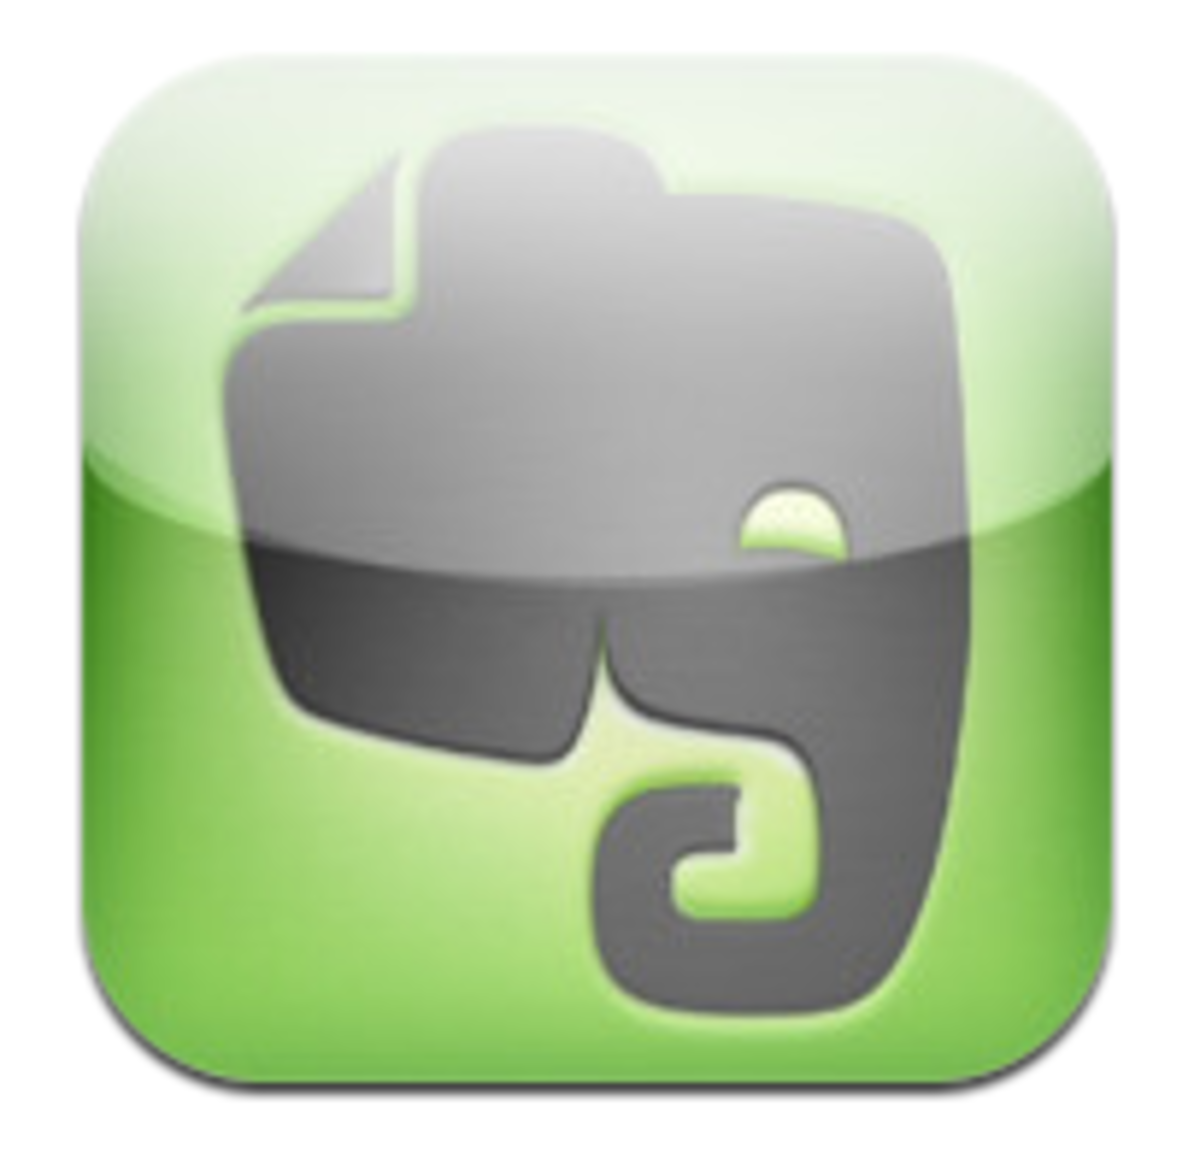 Evernote is a wonderful app that lets you do almost anything with your notes and information